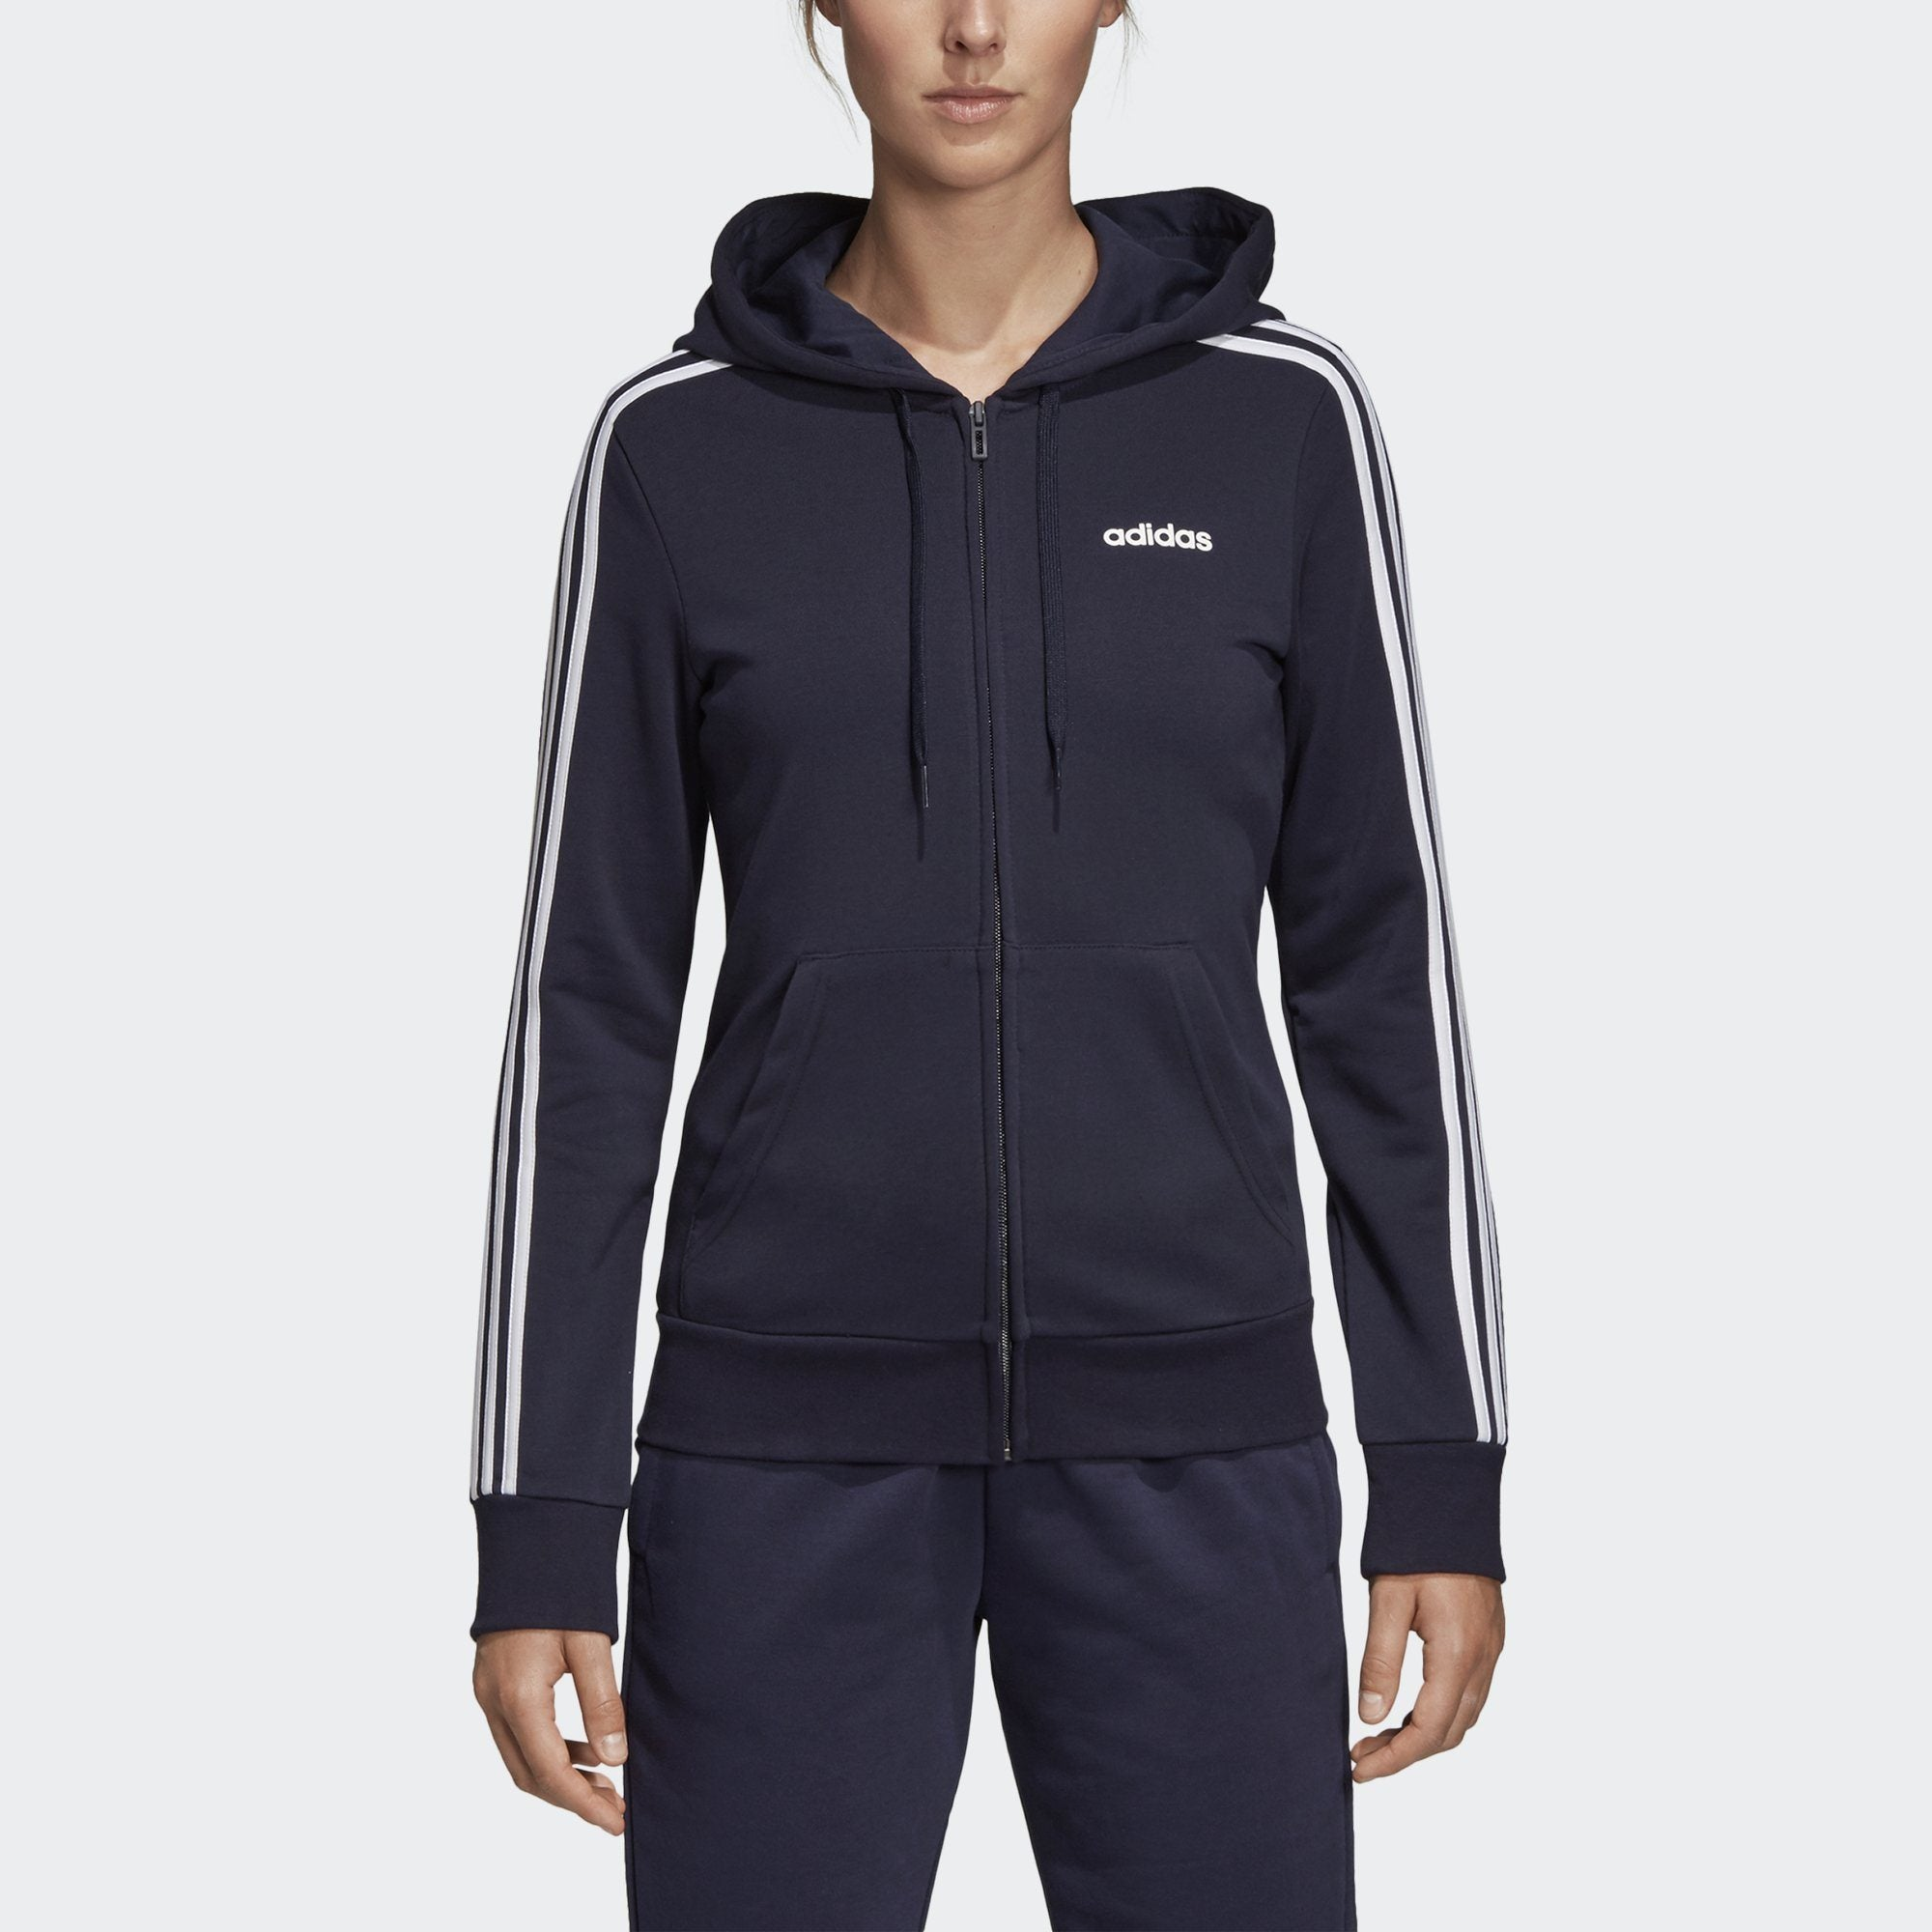 Adidas Womens Essentials 3 Stripes Hoodie legend ink white